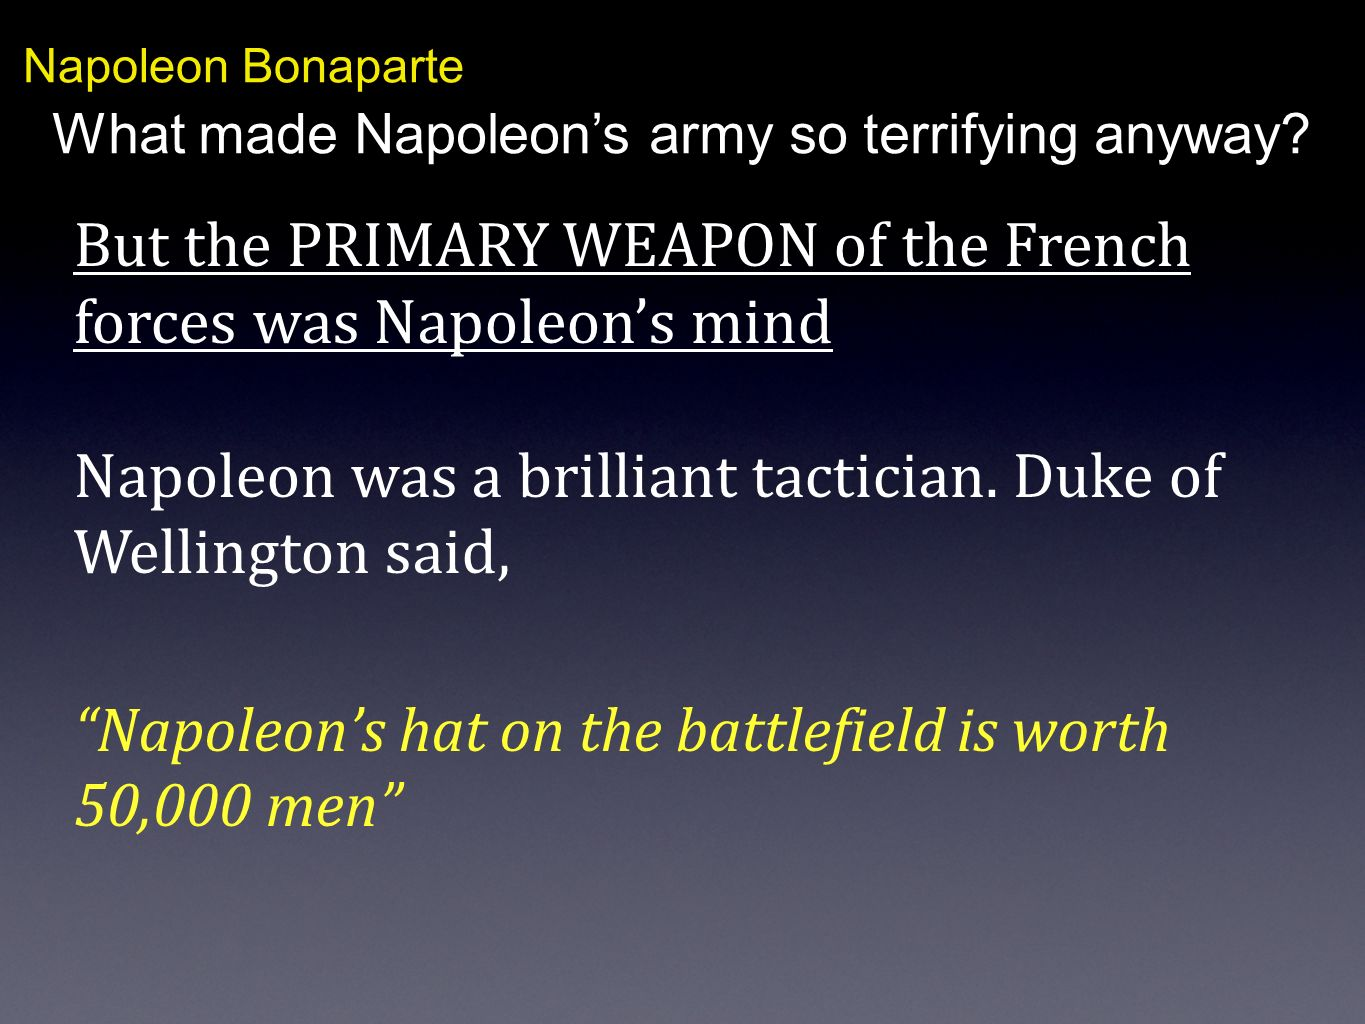 But the PRIMARY WEAPON of the French forces was Napoleon's mind